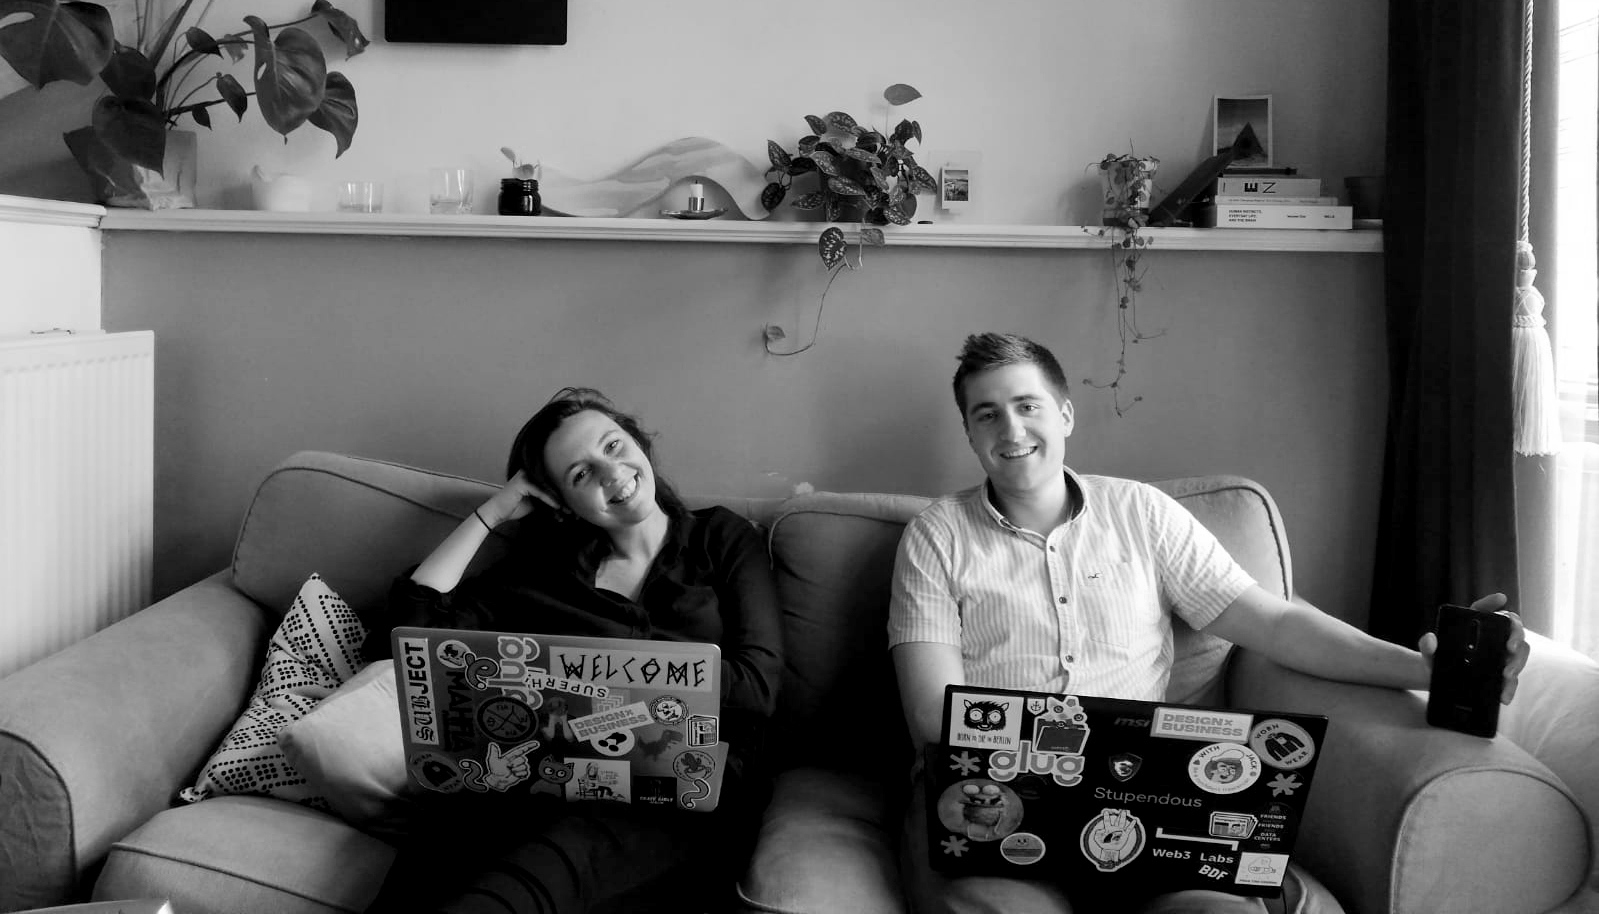 Picture of the founders Kelsey & David sitting on a couch working while travelling in the Netherlands